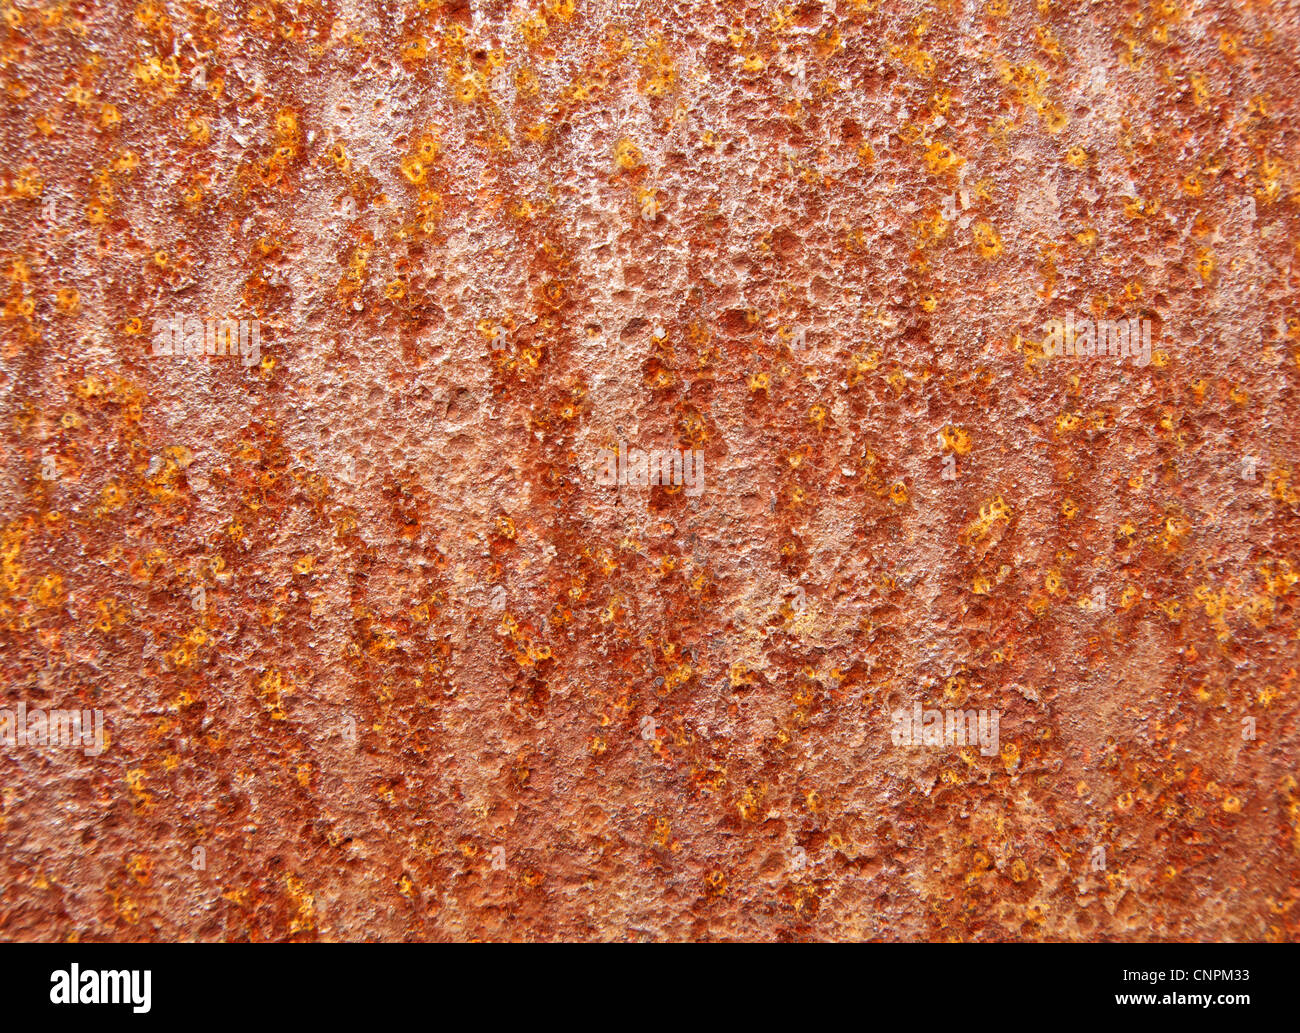 Rust texture - Stock Image